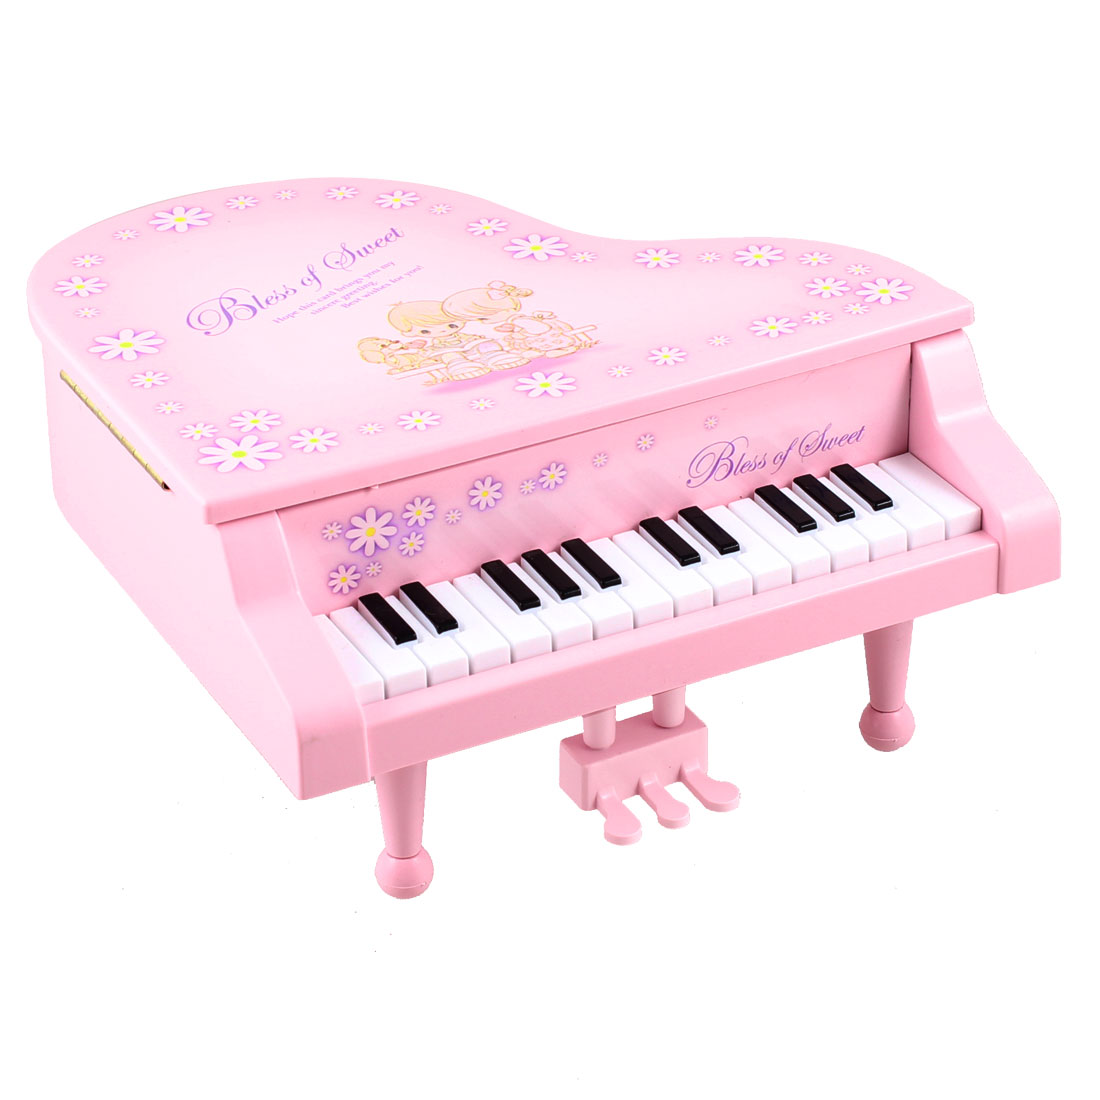 Pink Plastic Flower Print Piano Music Box Miniature Model Toy for Kids